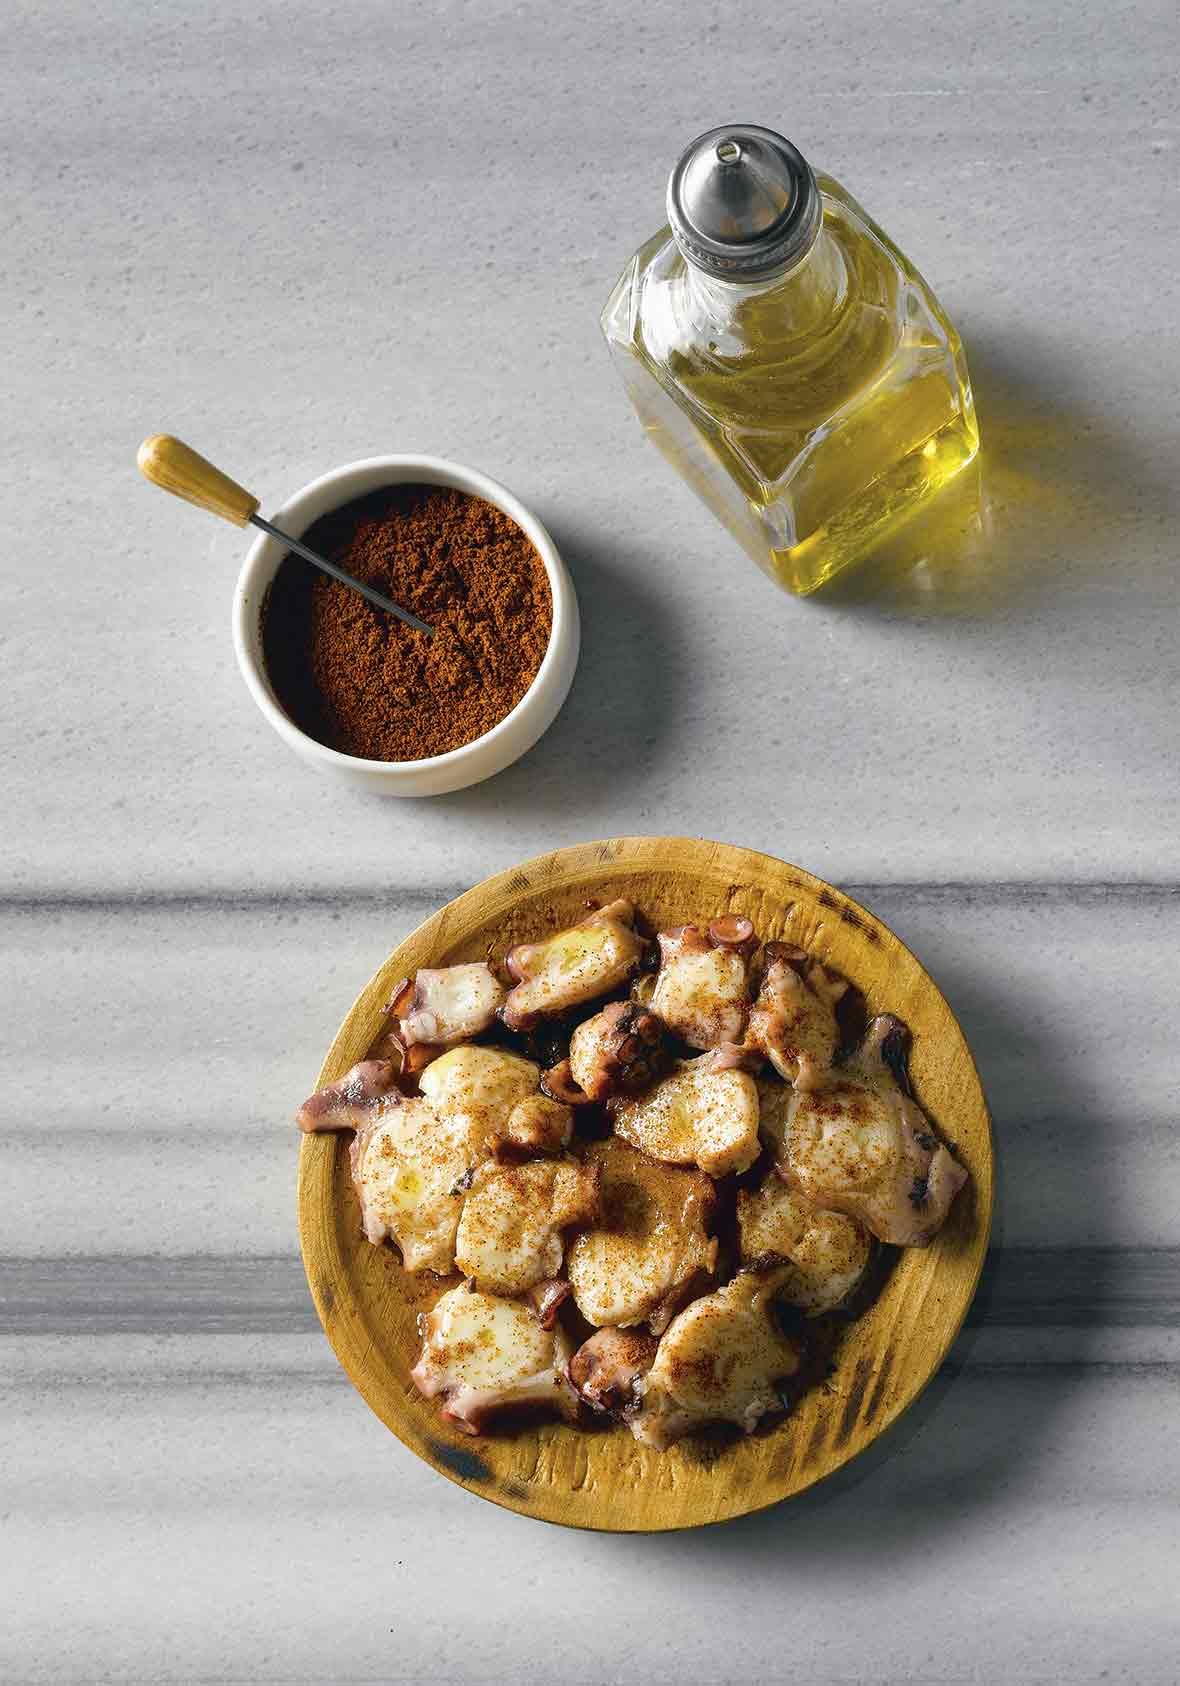 Wooden bowl of octopus with paprika, bowl of paprika, cruet of olive oil